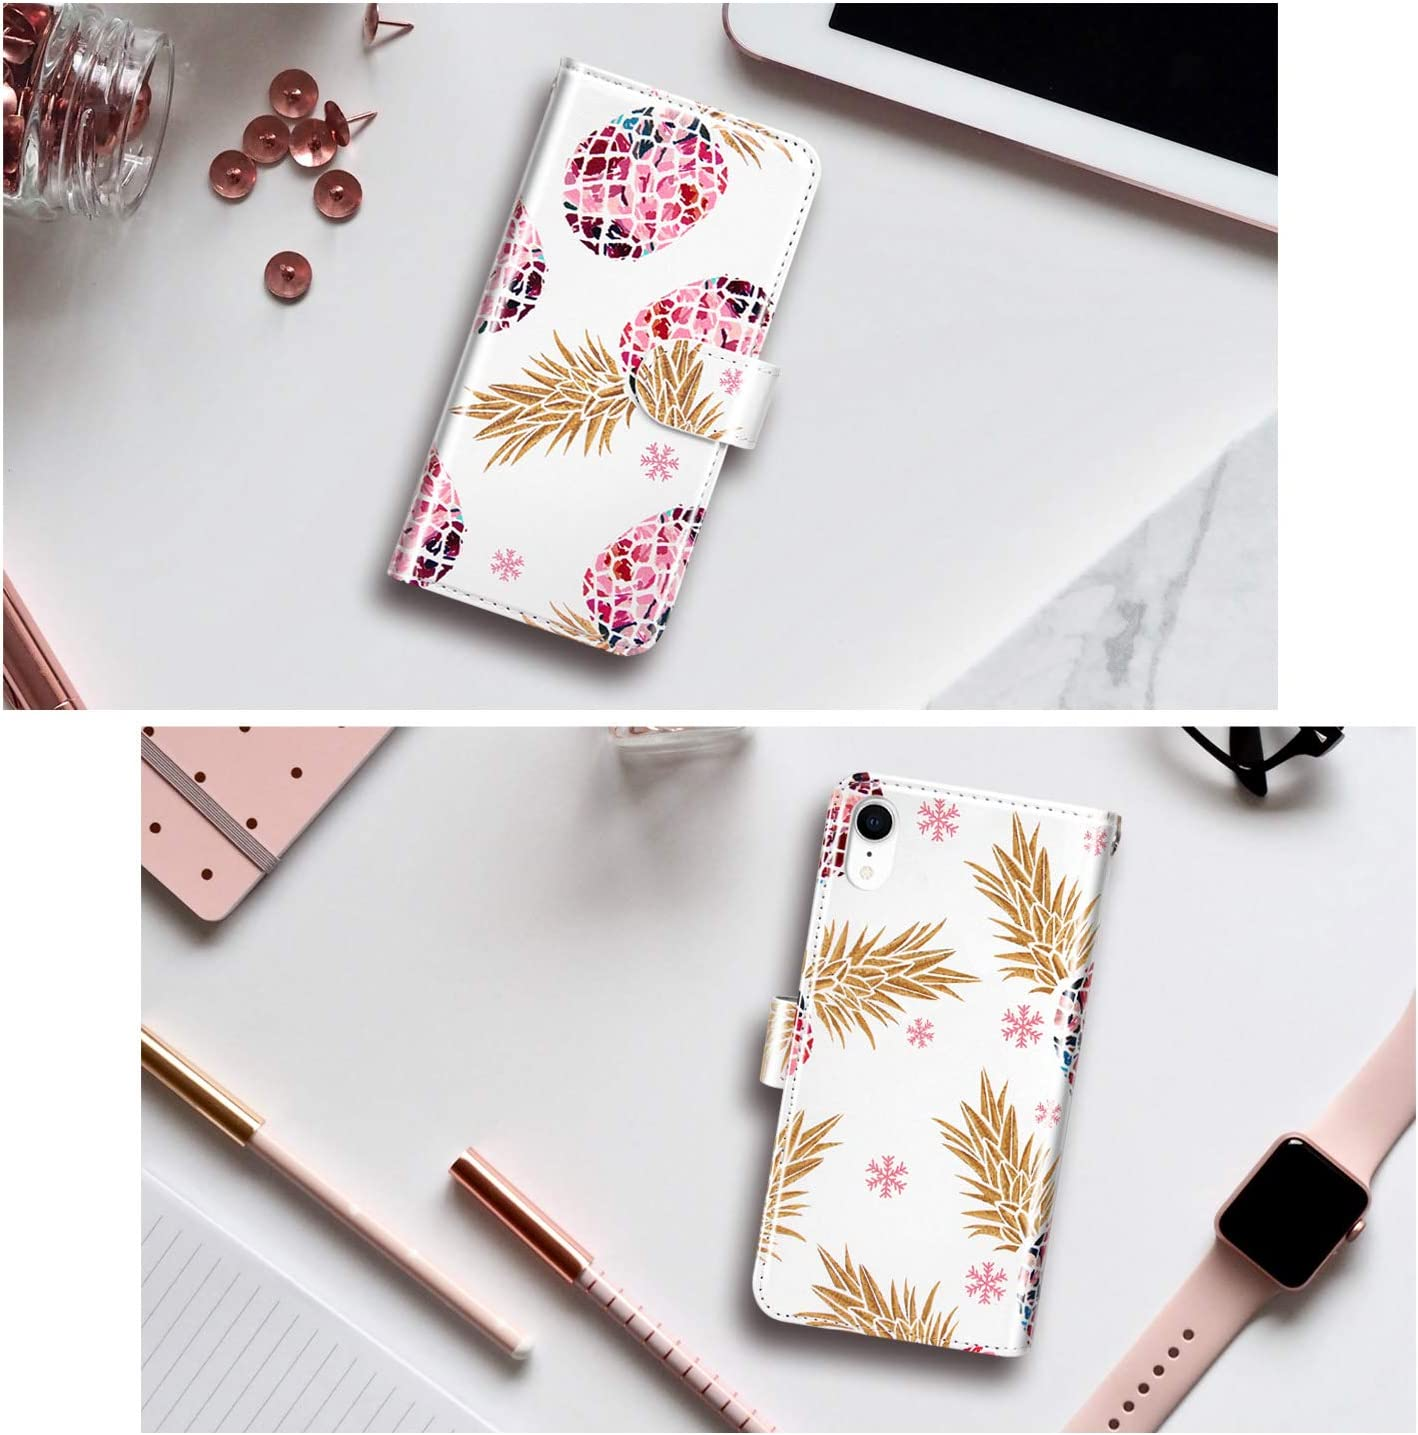 Dailylux iPhone XR Case,iPhone XR Wallet Case Sparkly Bling Shiny Faux Leather Magnetic Closure Card Slot Cash Holder Flip Cover Protective Phone Case for iPhone XR 2018 6.1,Glitter Rose Gold